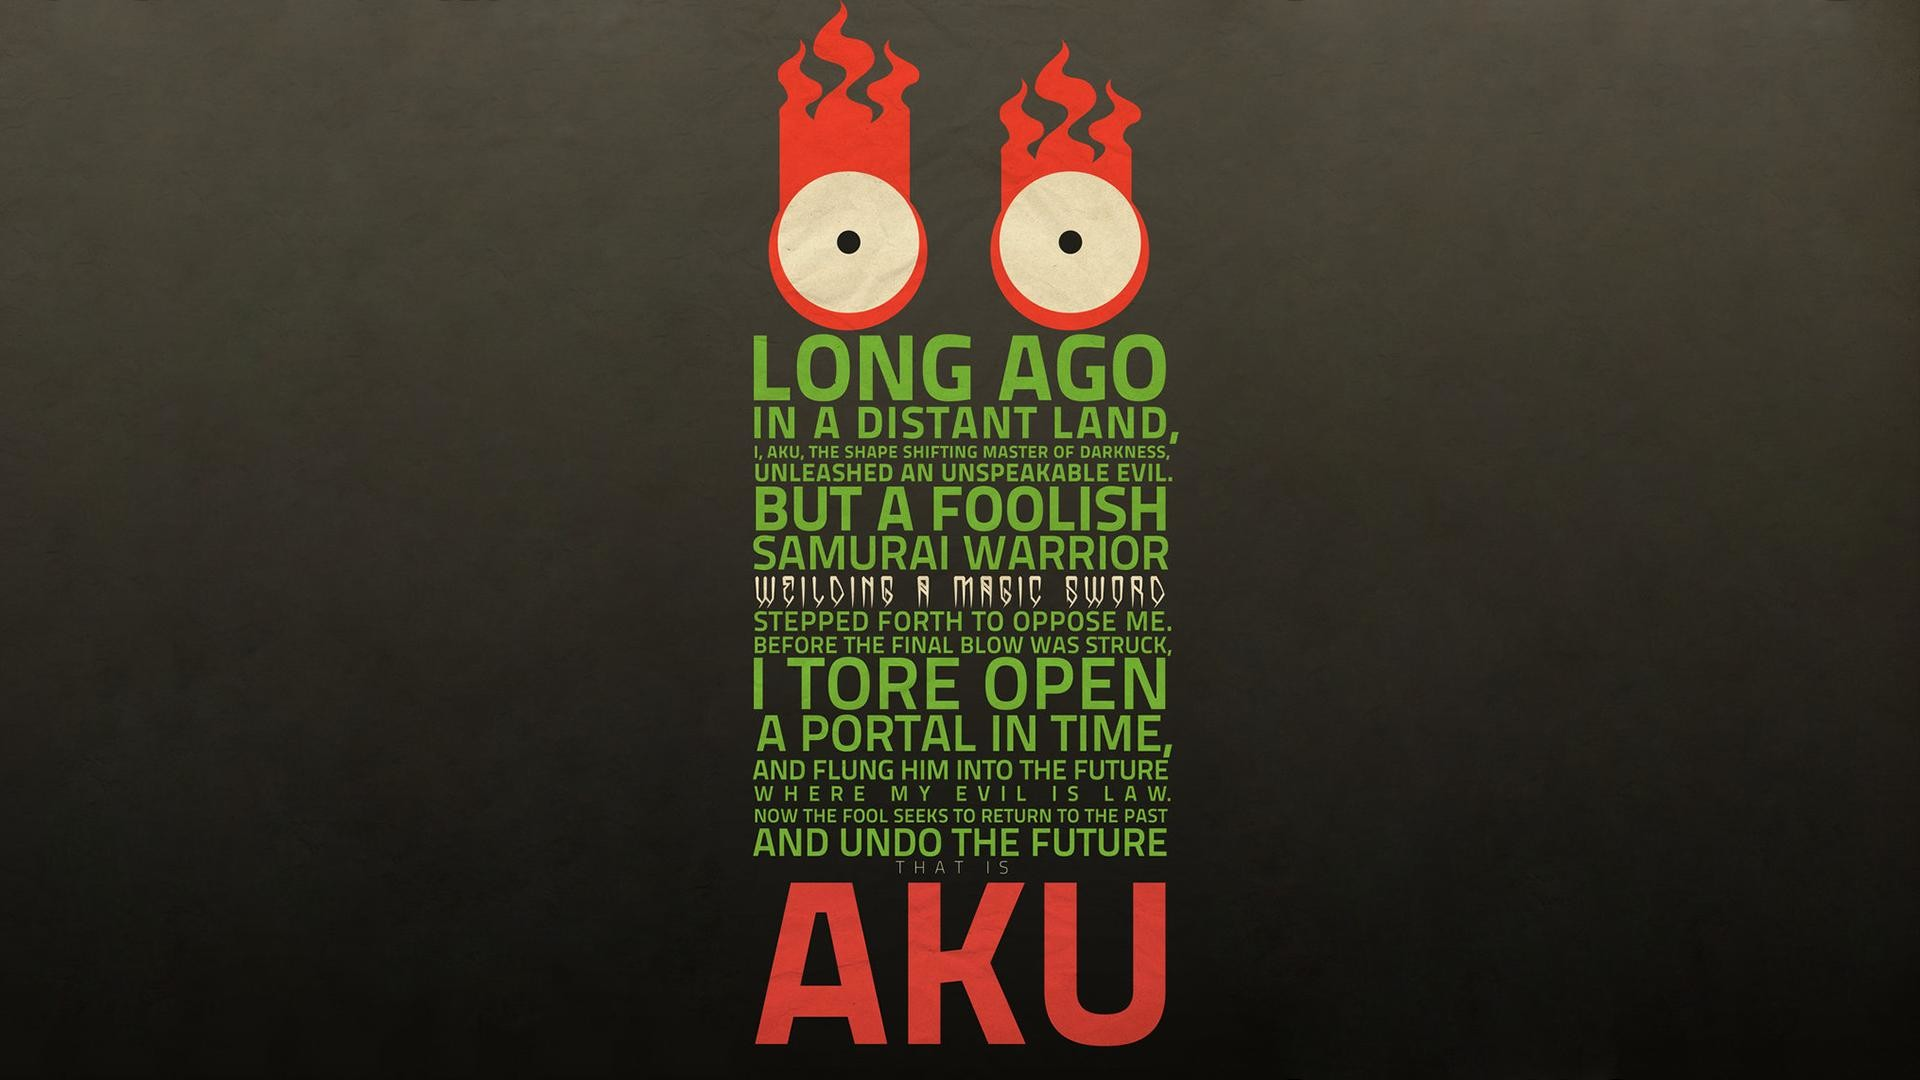 Res: 1920x1080, LONG AGO IN A DISTANT LAND, I, AKU, THE SHAPE SHIFTING MASTER OF